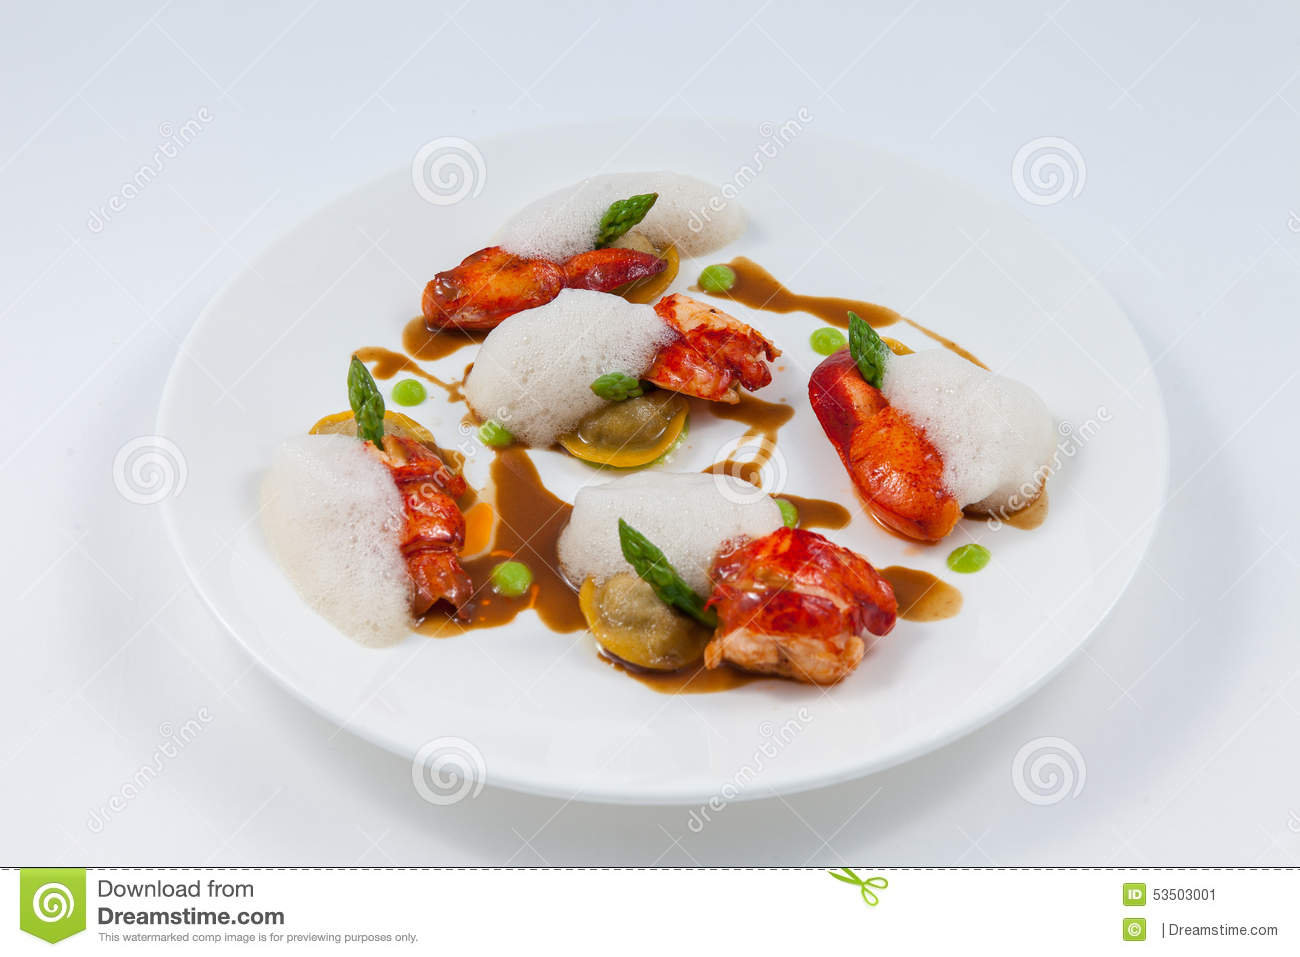 Lobster fine dining stock image. Image of plate, foodstyling - 53503001